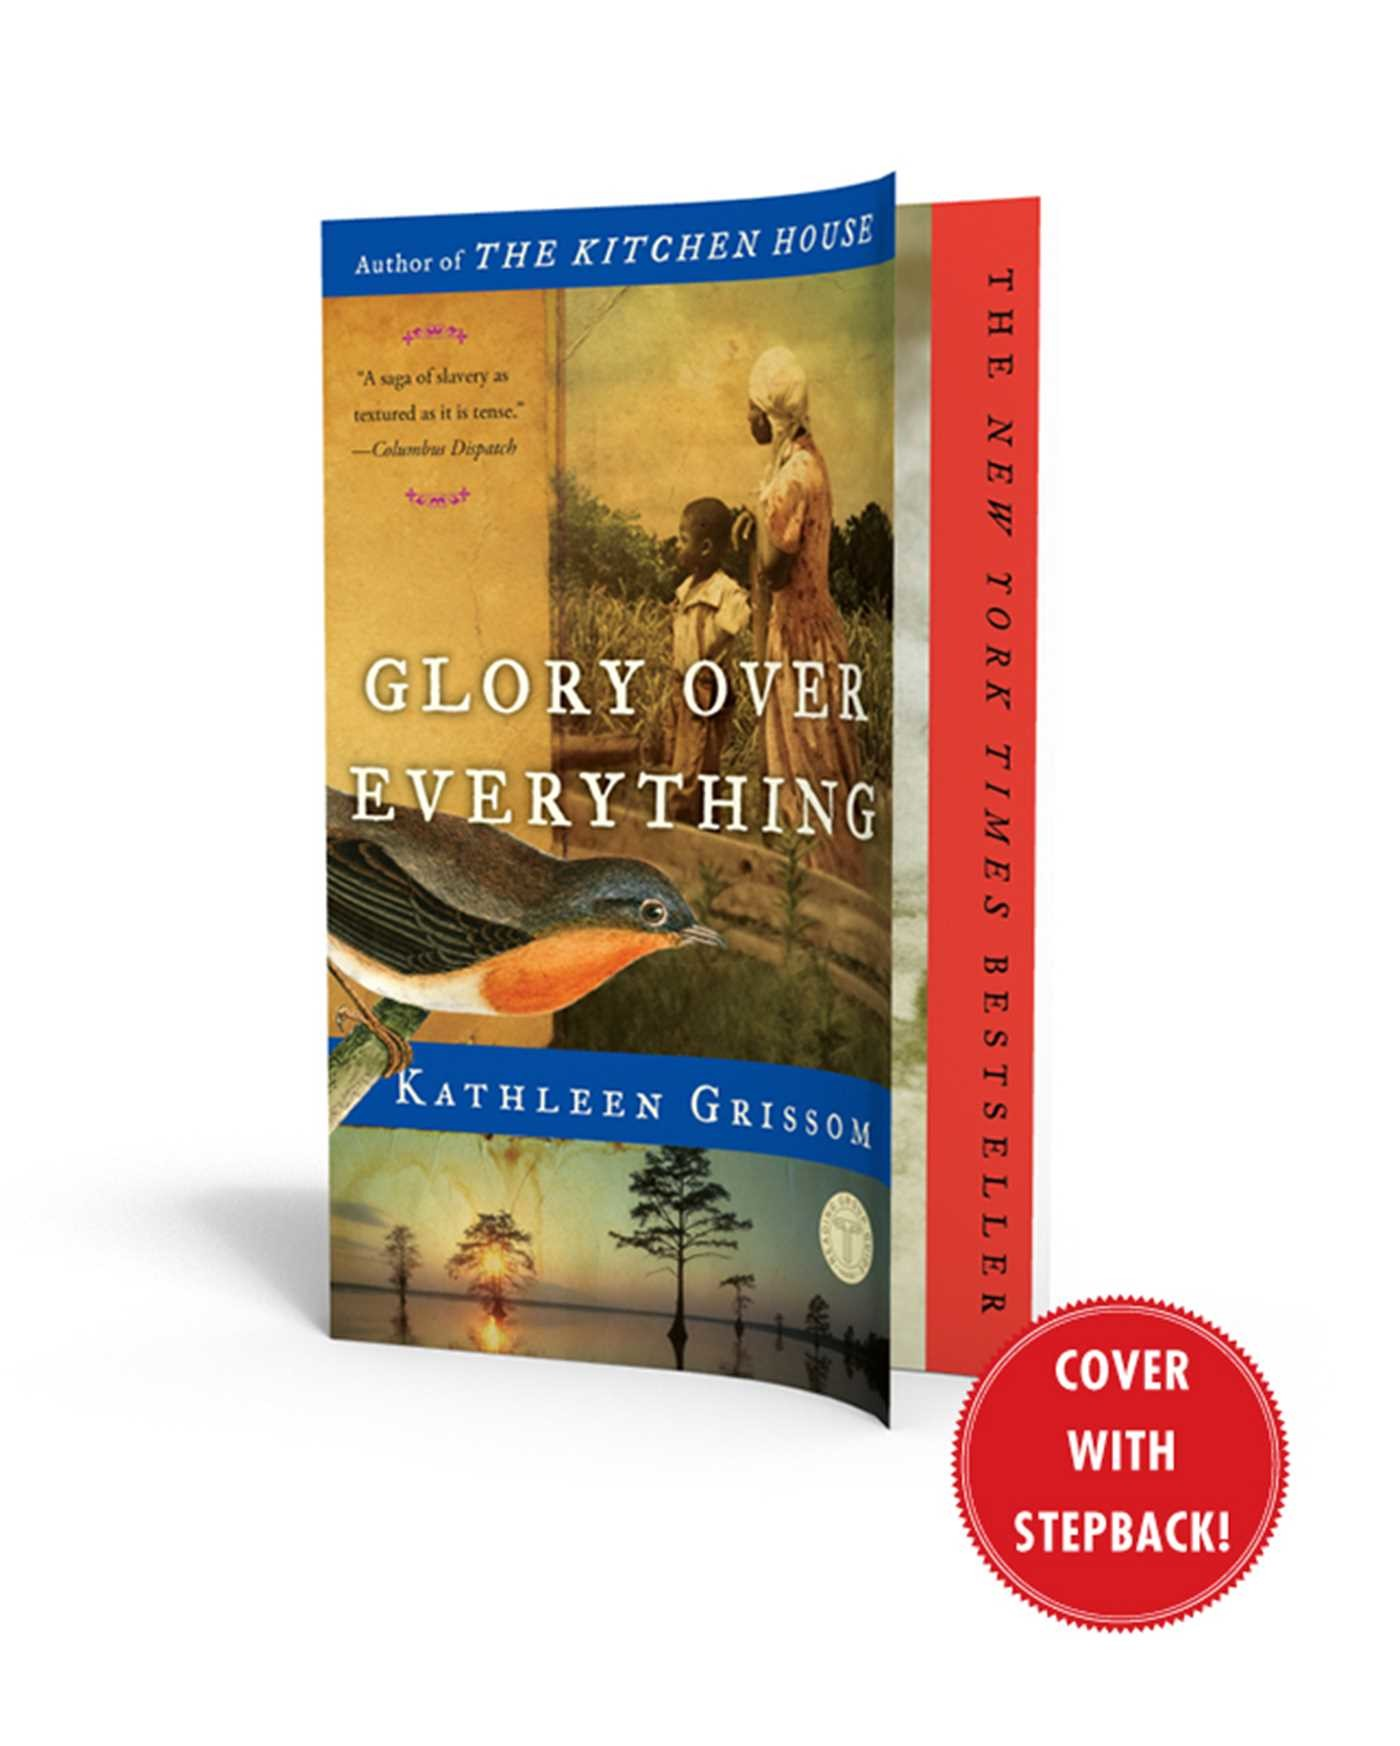 Glory over everything 9781476748450.in17